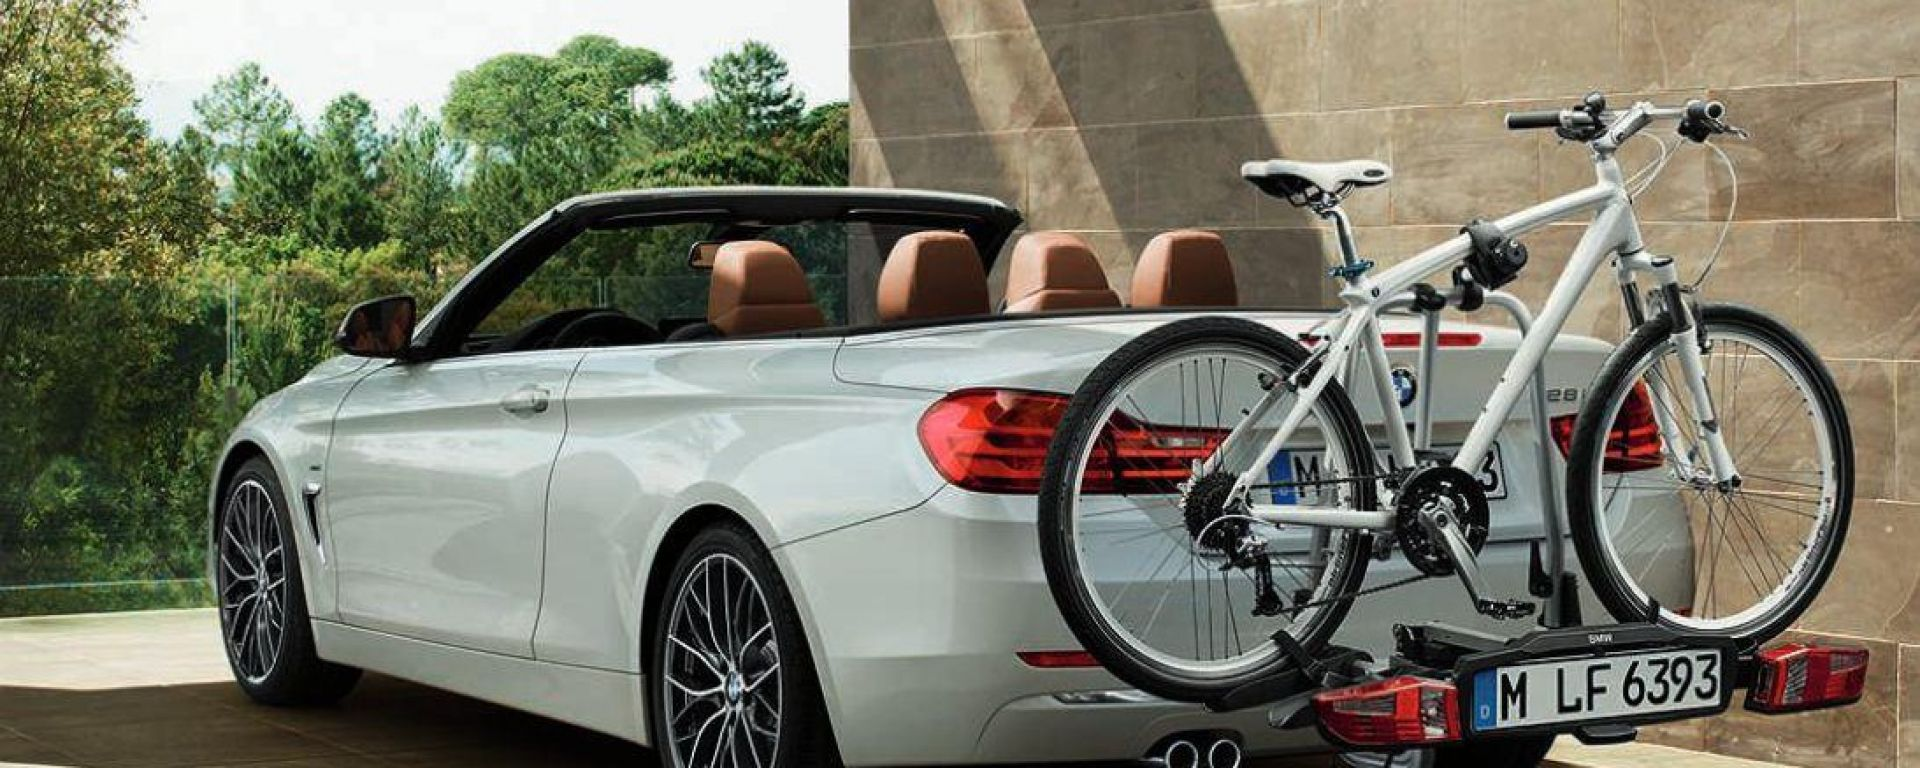 "BMW Serie 4 Cabriolet: le foto ""rubate"""